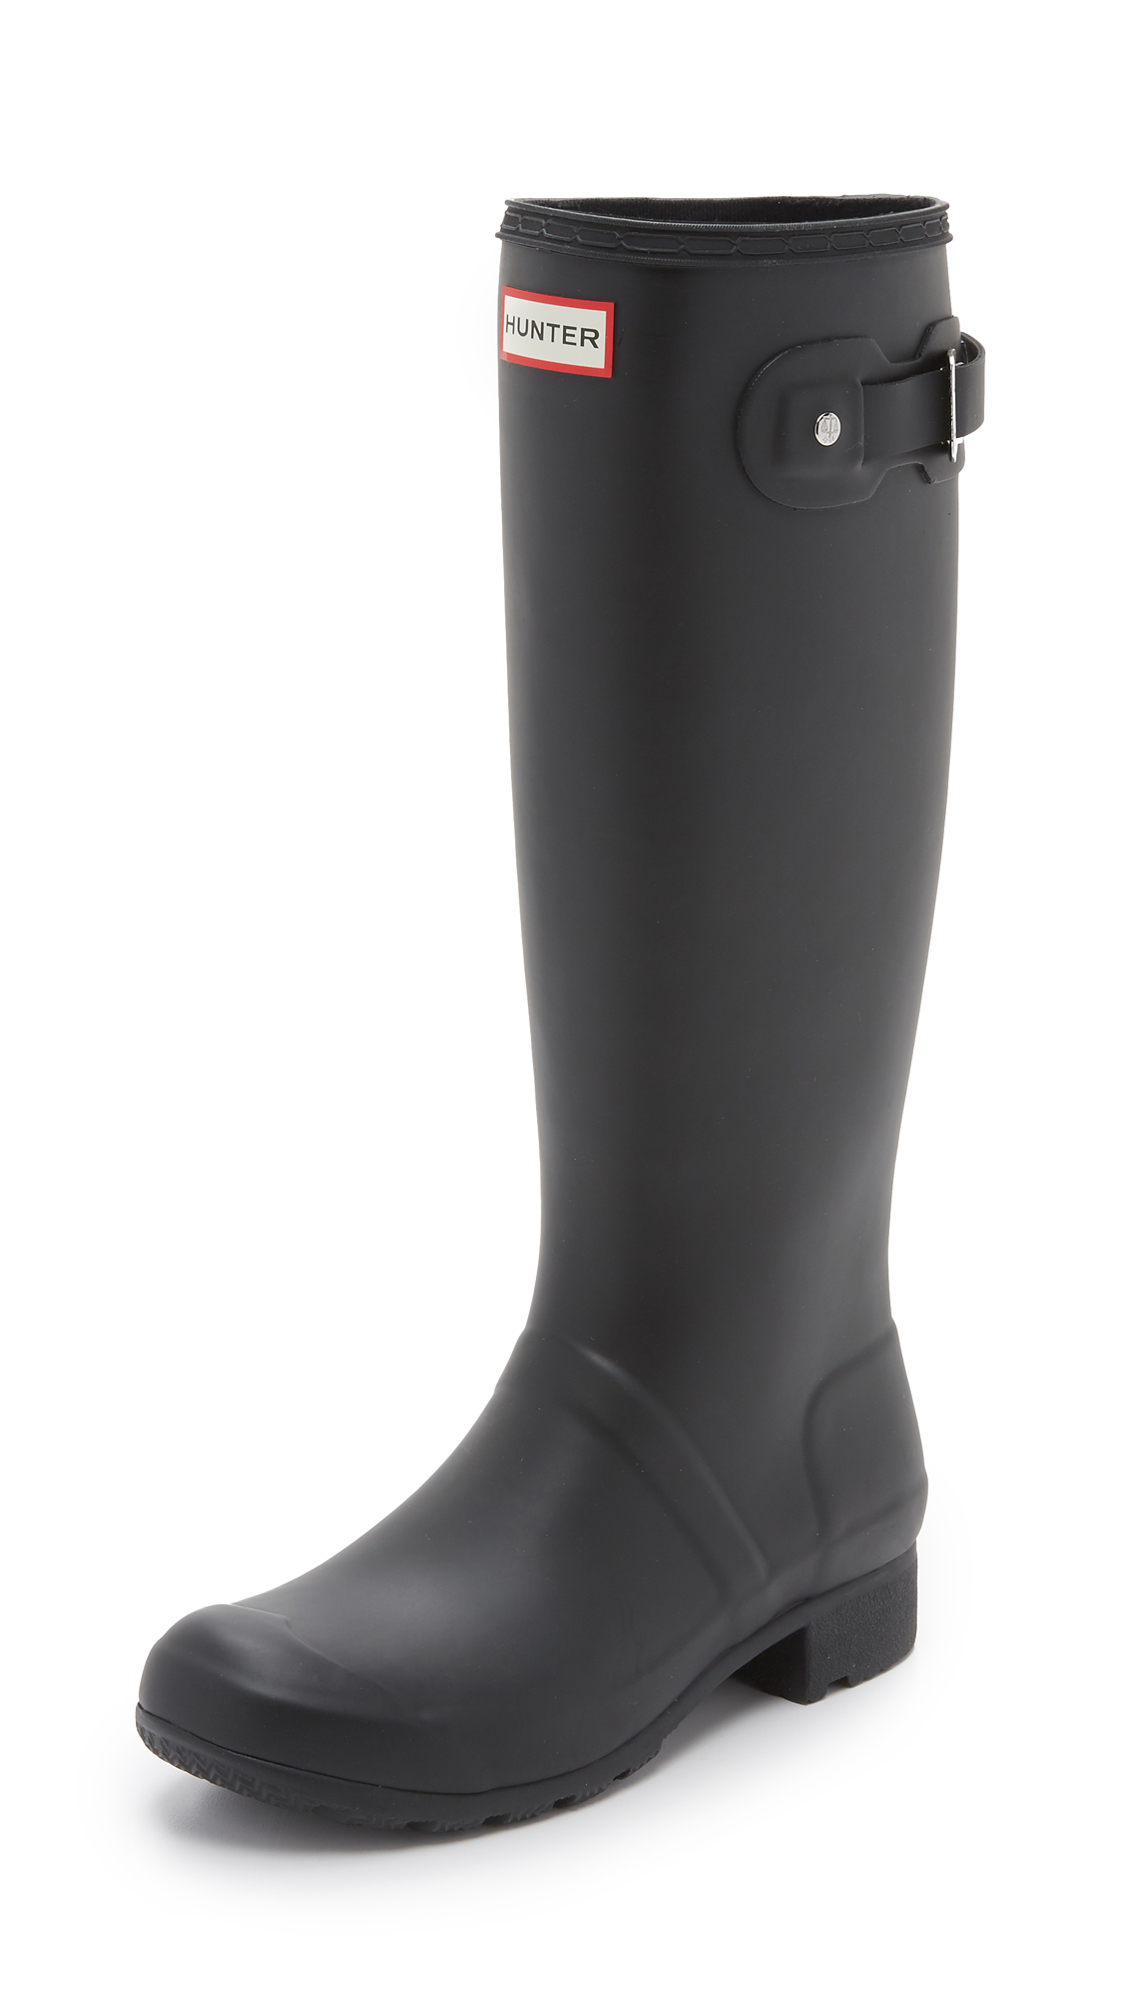 Hunter Boots Original Tour Boots - Black at Shopbop